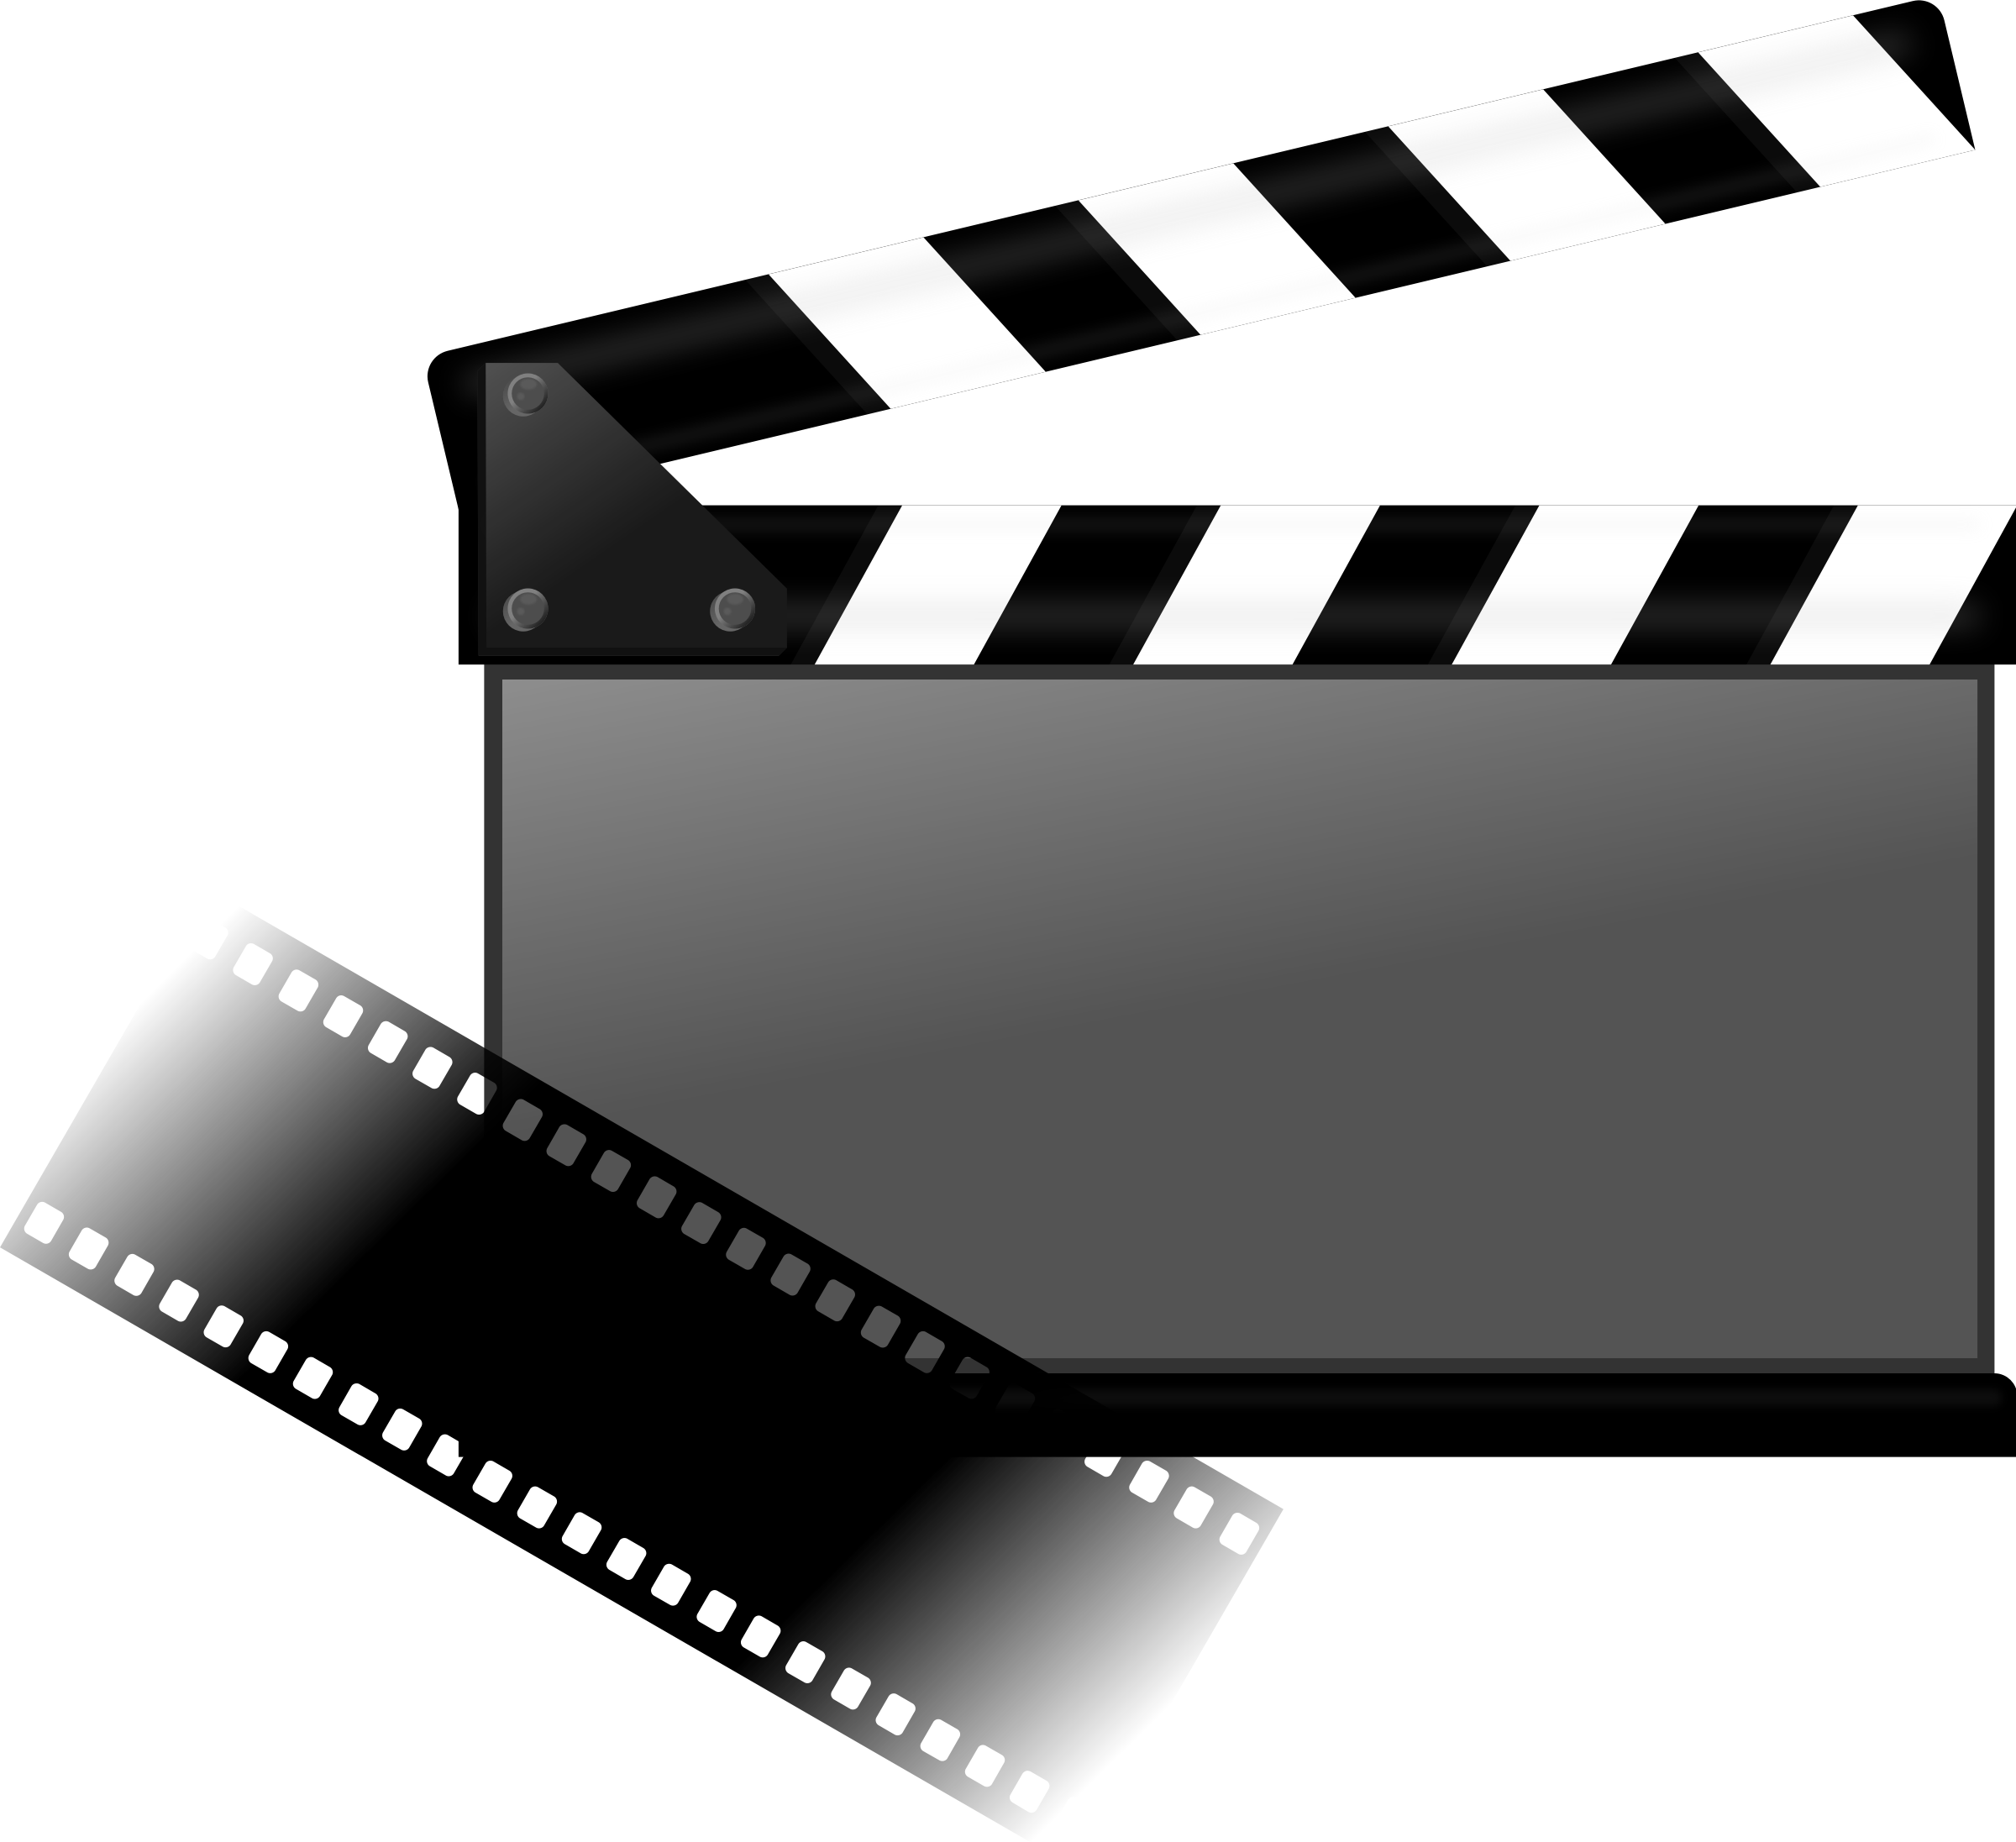 Movies vector clap. Hybrid film and its